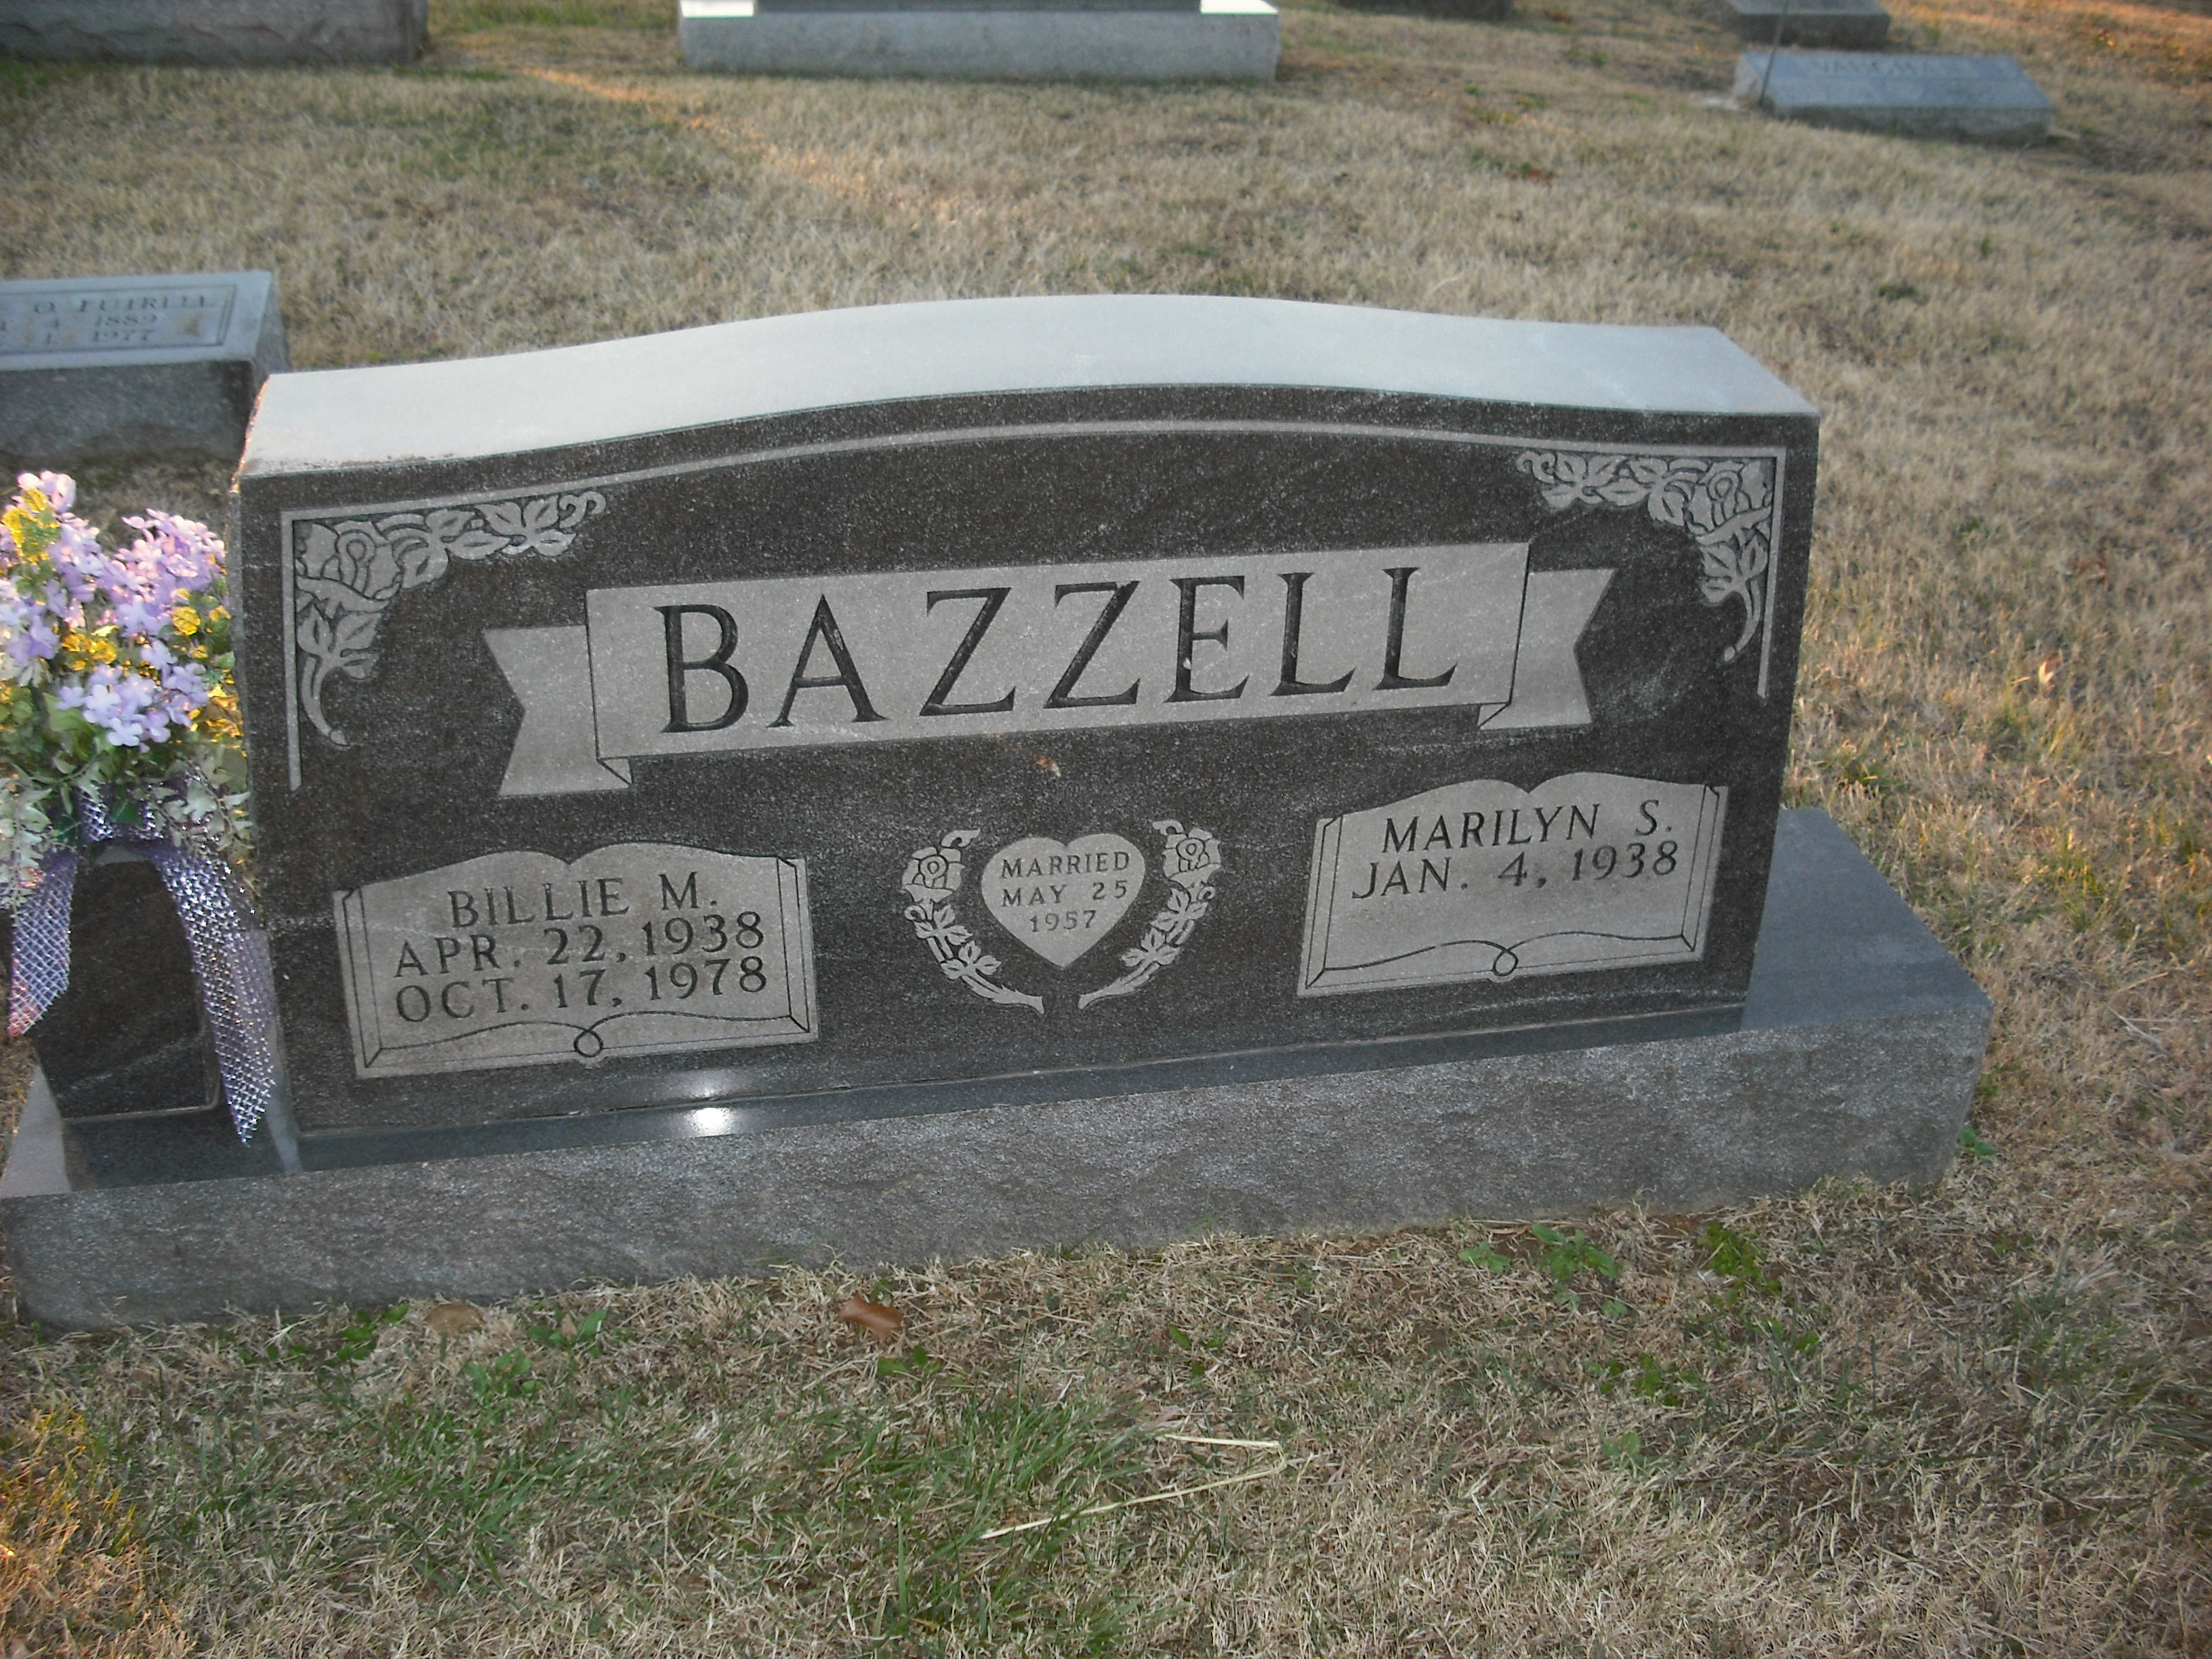 Billie M. Bazzell